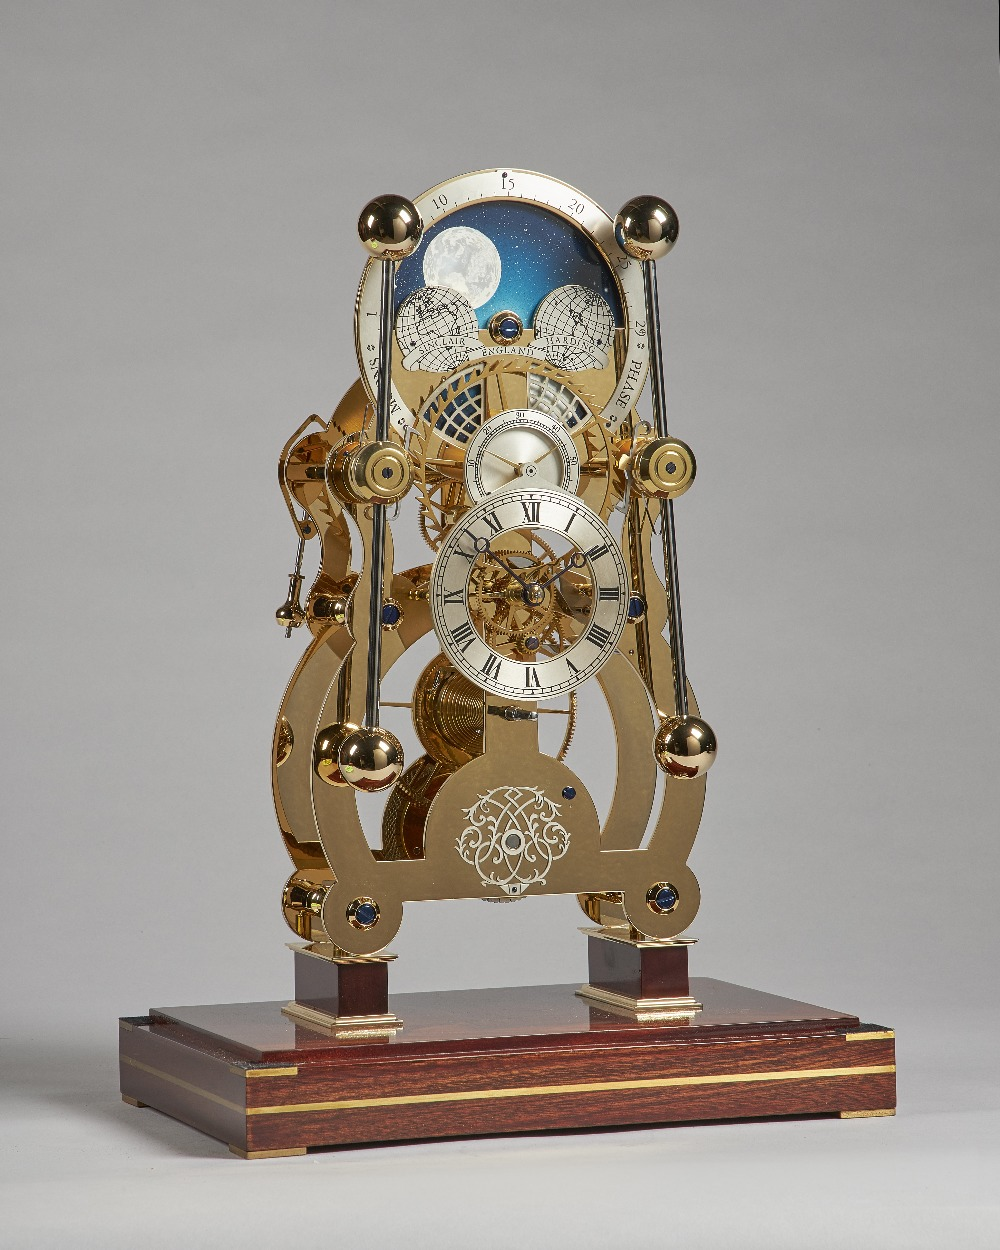 Lot 684 - A Modern Moonphase skeleton timepiece with grasshopper escapement By Sinclair Harding, No. 1003.